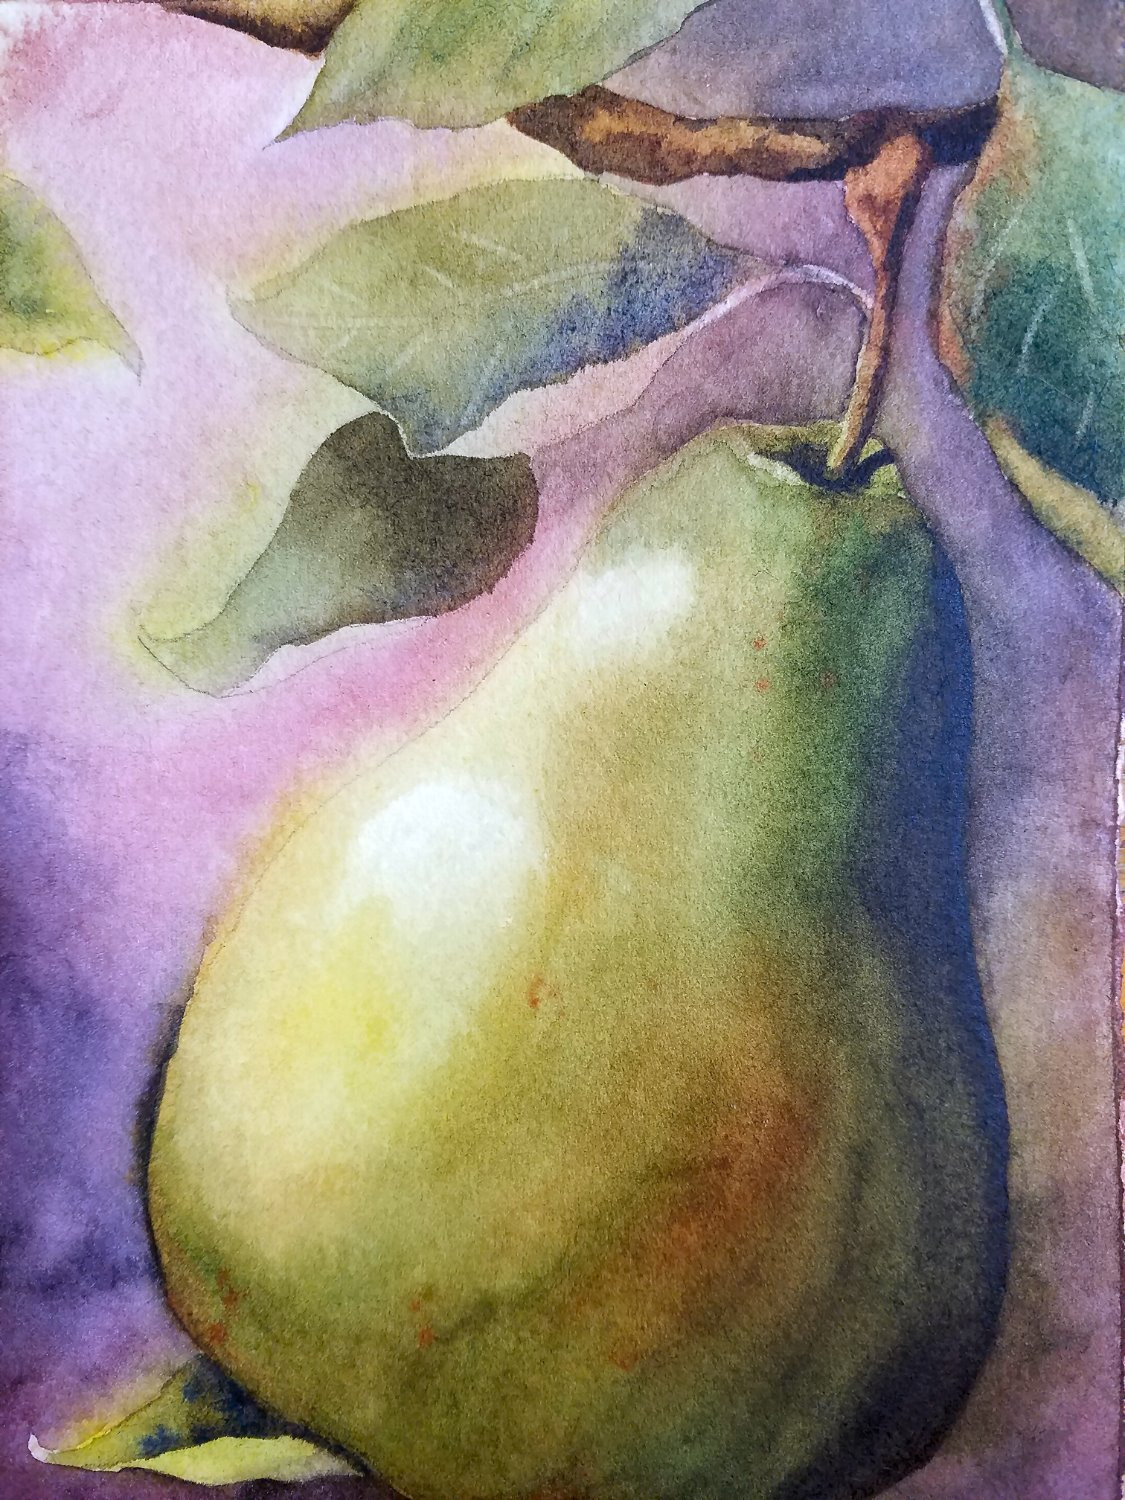 Pear (sold)